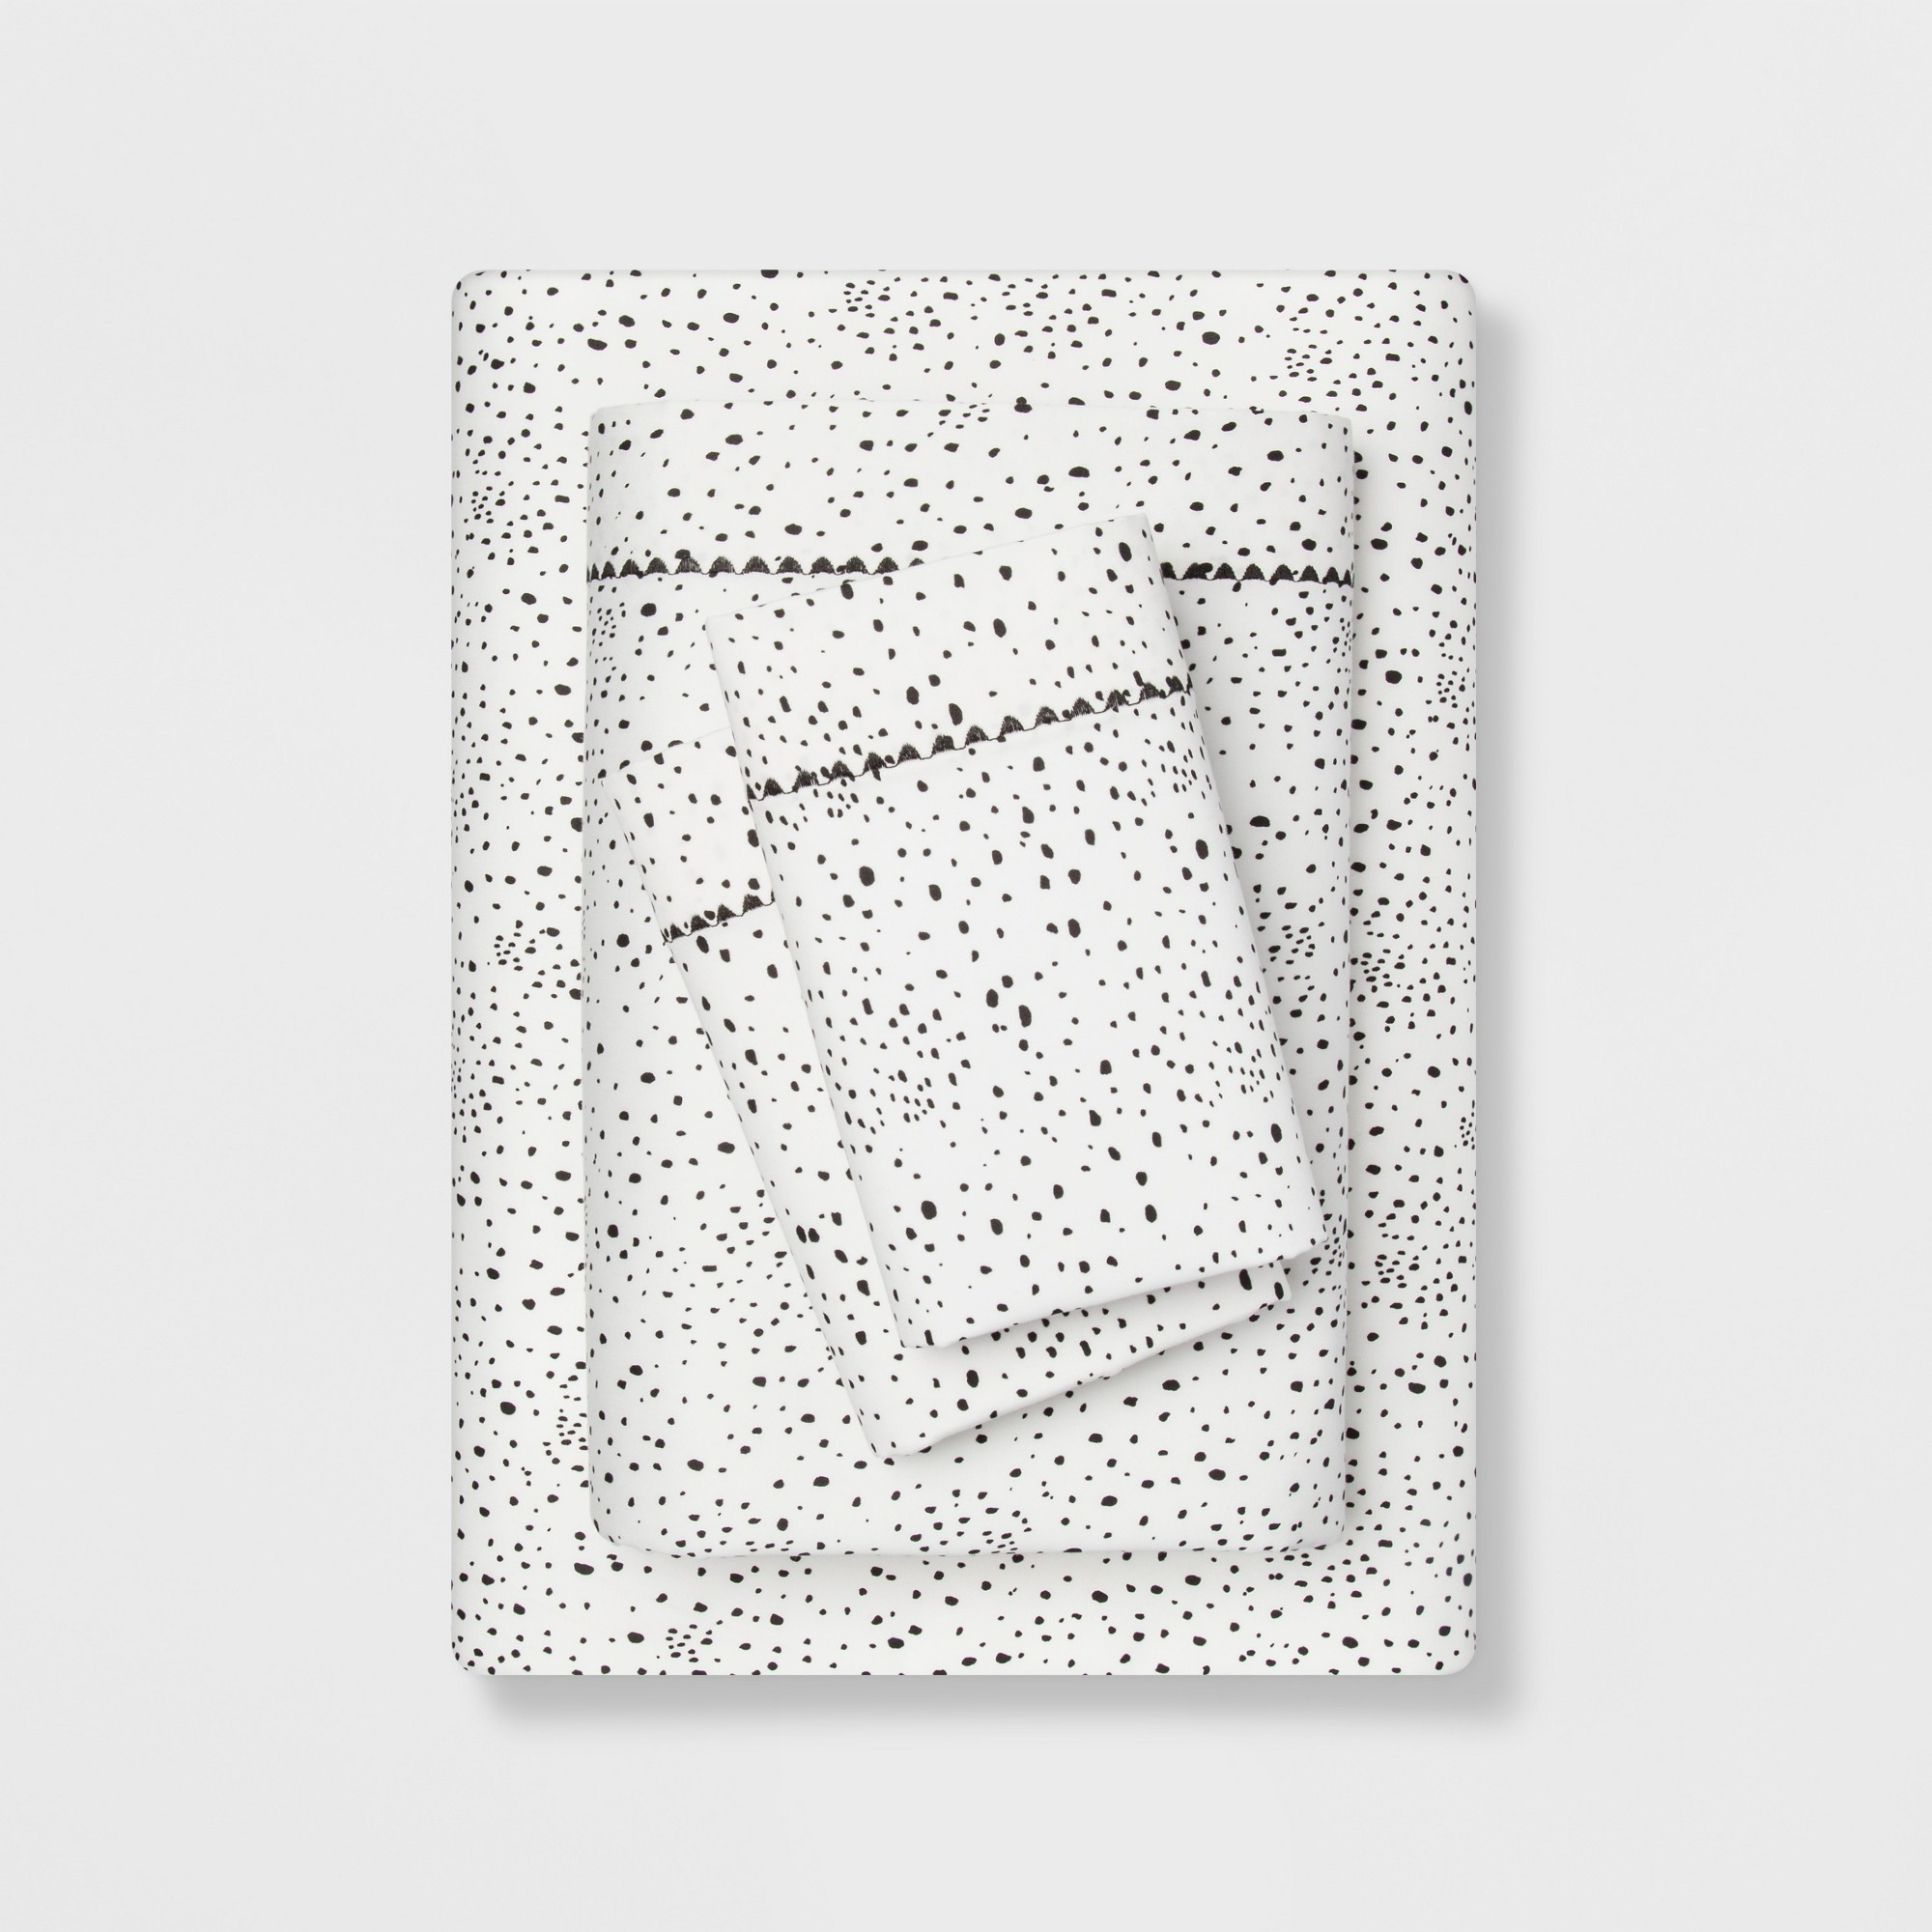 Full 400 Thread Count Dotted Print Cotton Performance Sheet Set White/Black - Opalhouse